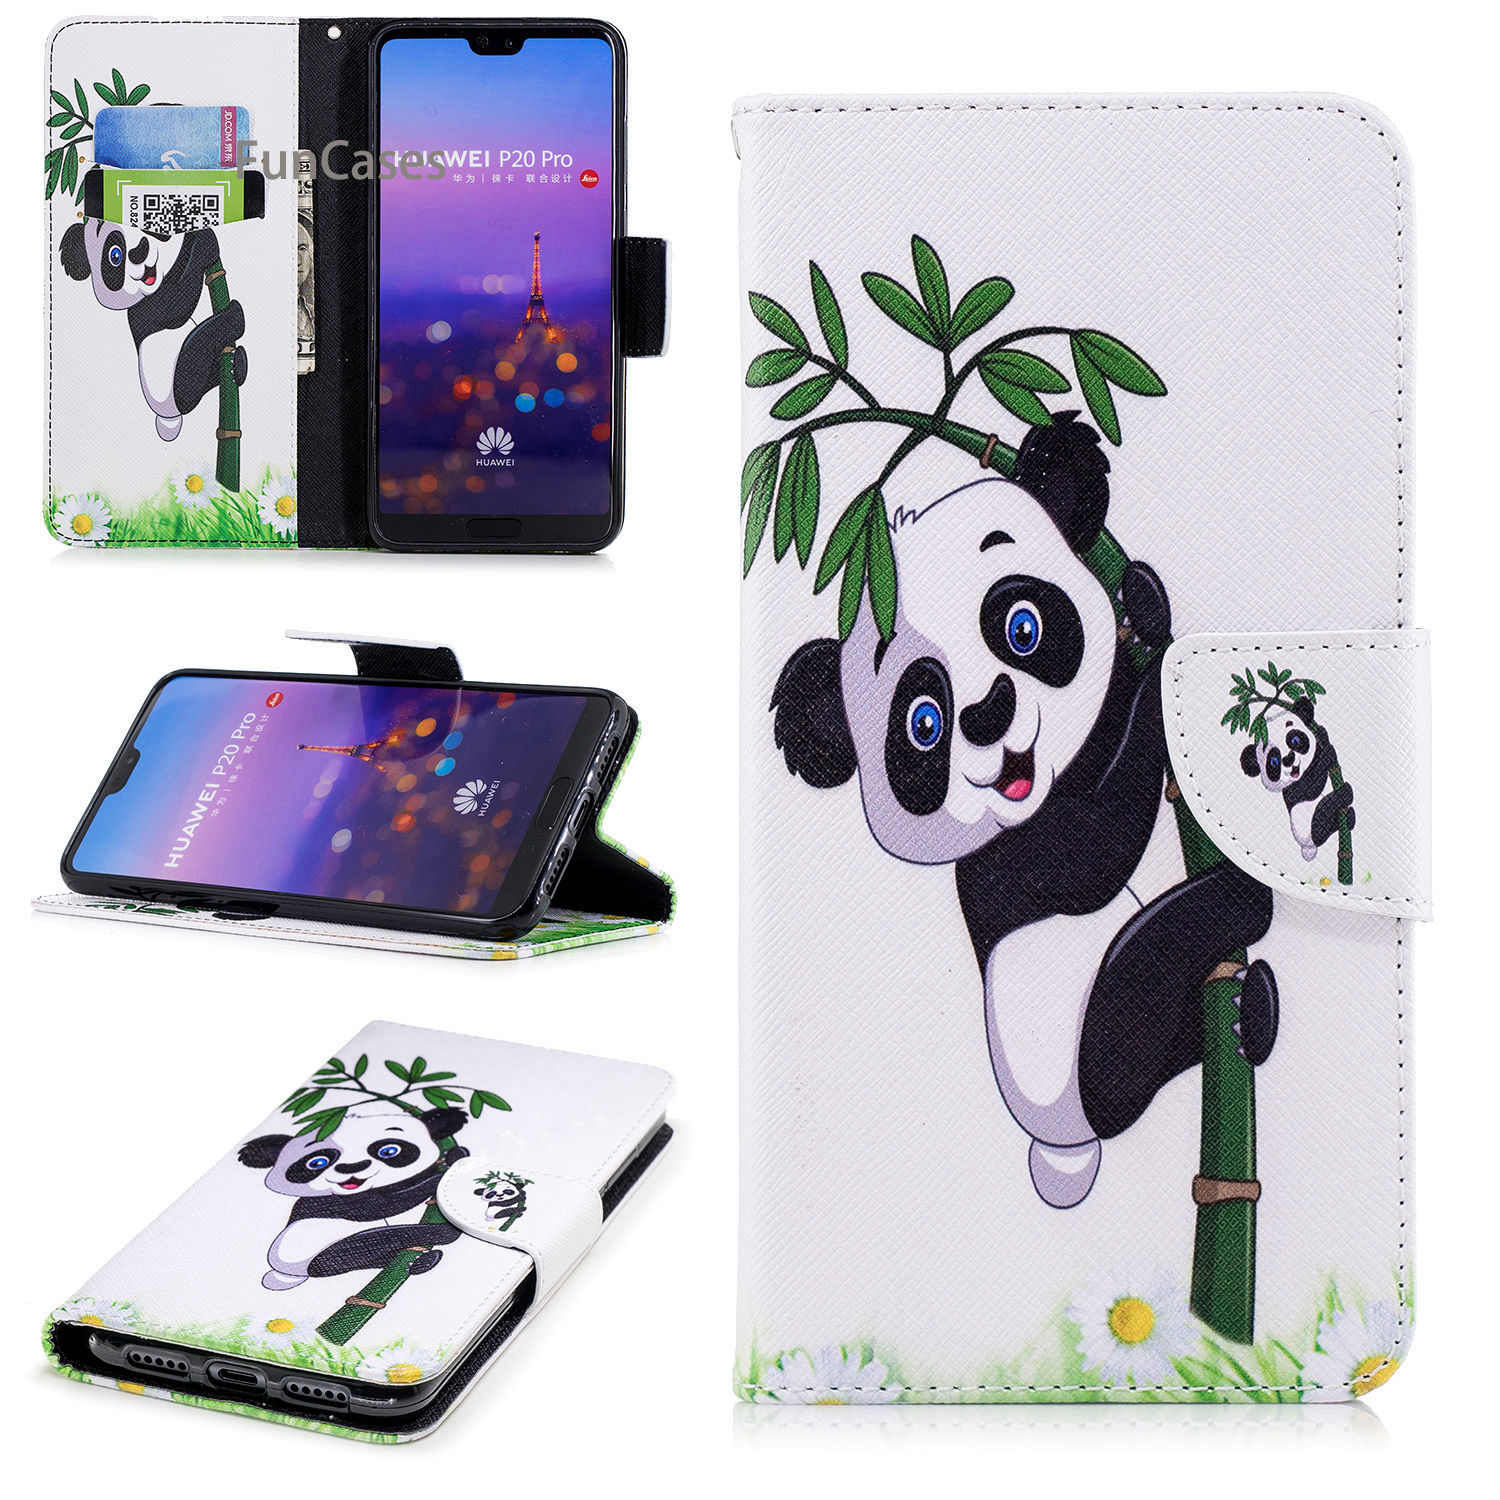 Giant Panda Flip Phone Case Sfor Hoesje Huawei P20 Pro Soft Silicone Phone Case Accessory Flip Phone Case Huawei Ascend P20 Plus Flip Cases Aliexpress